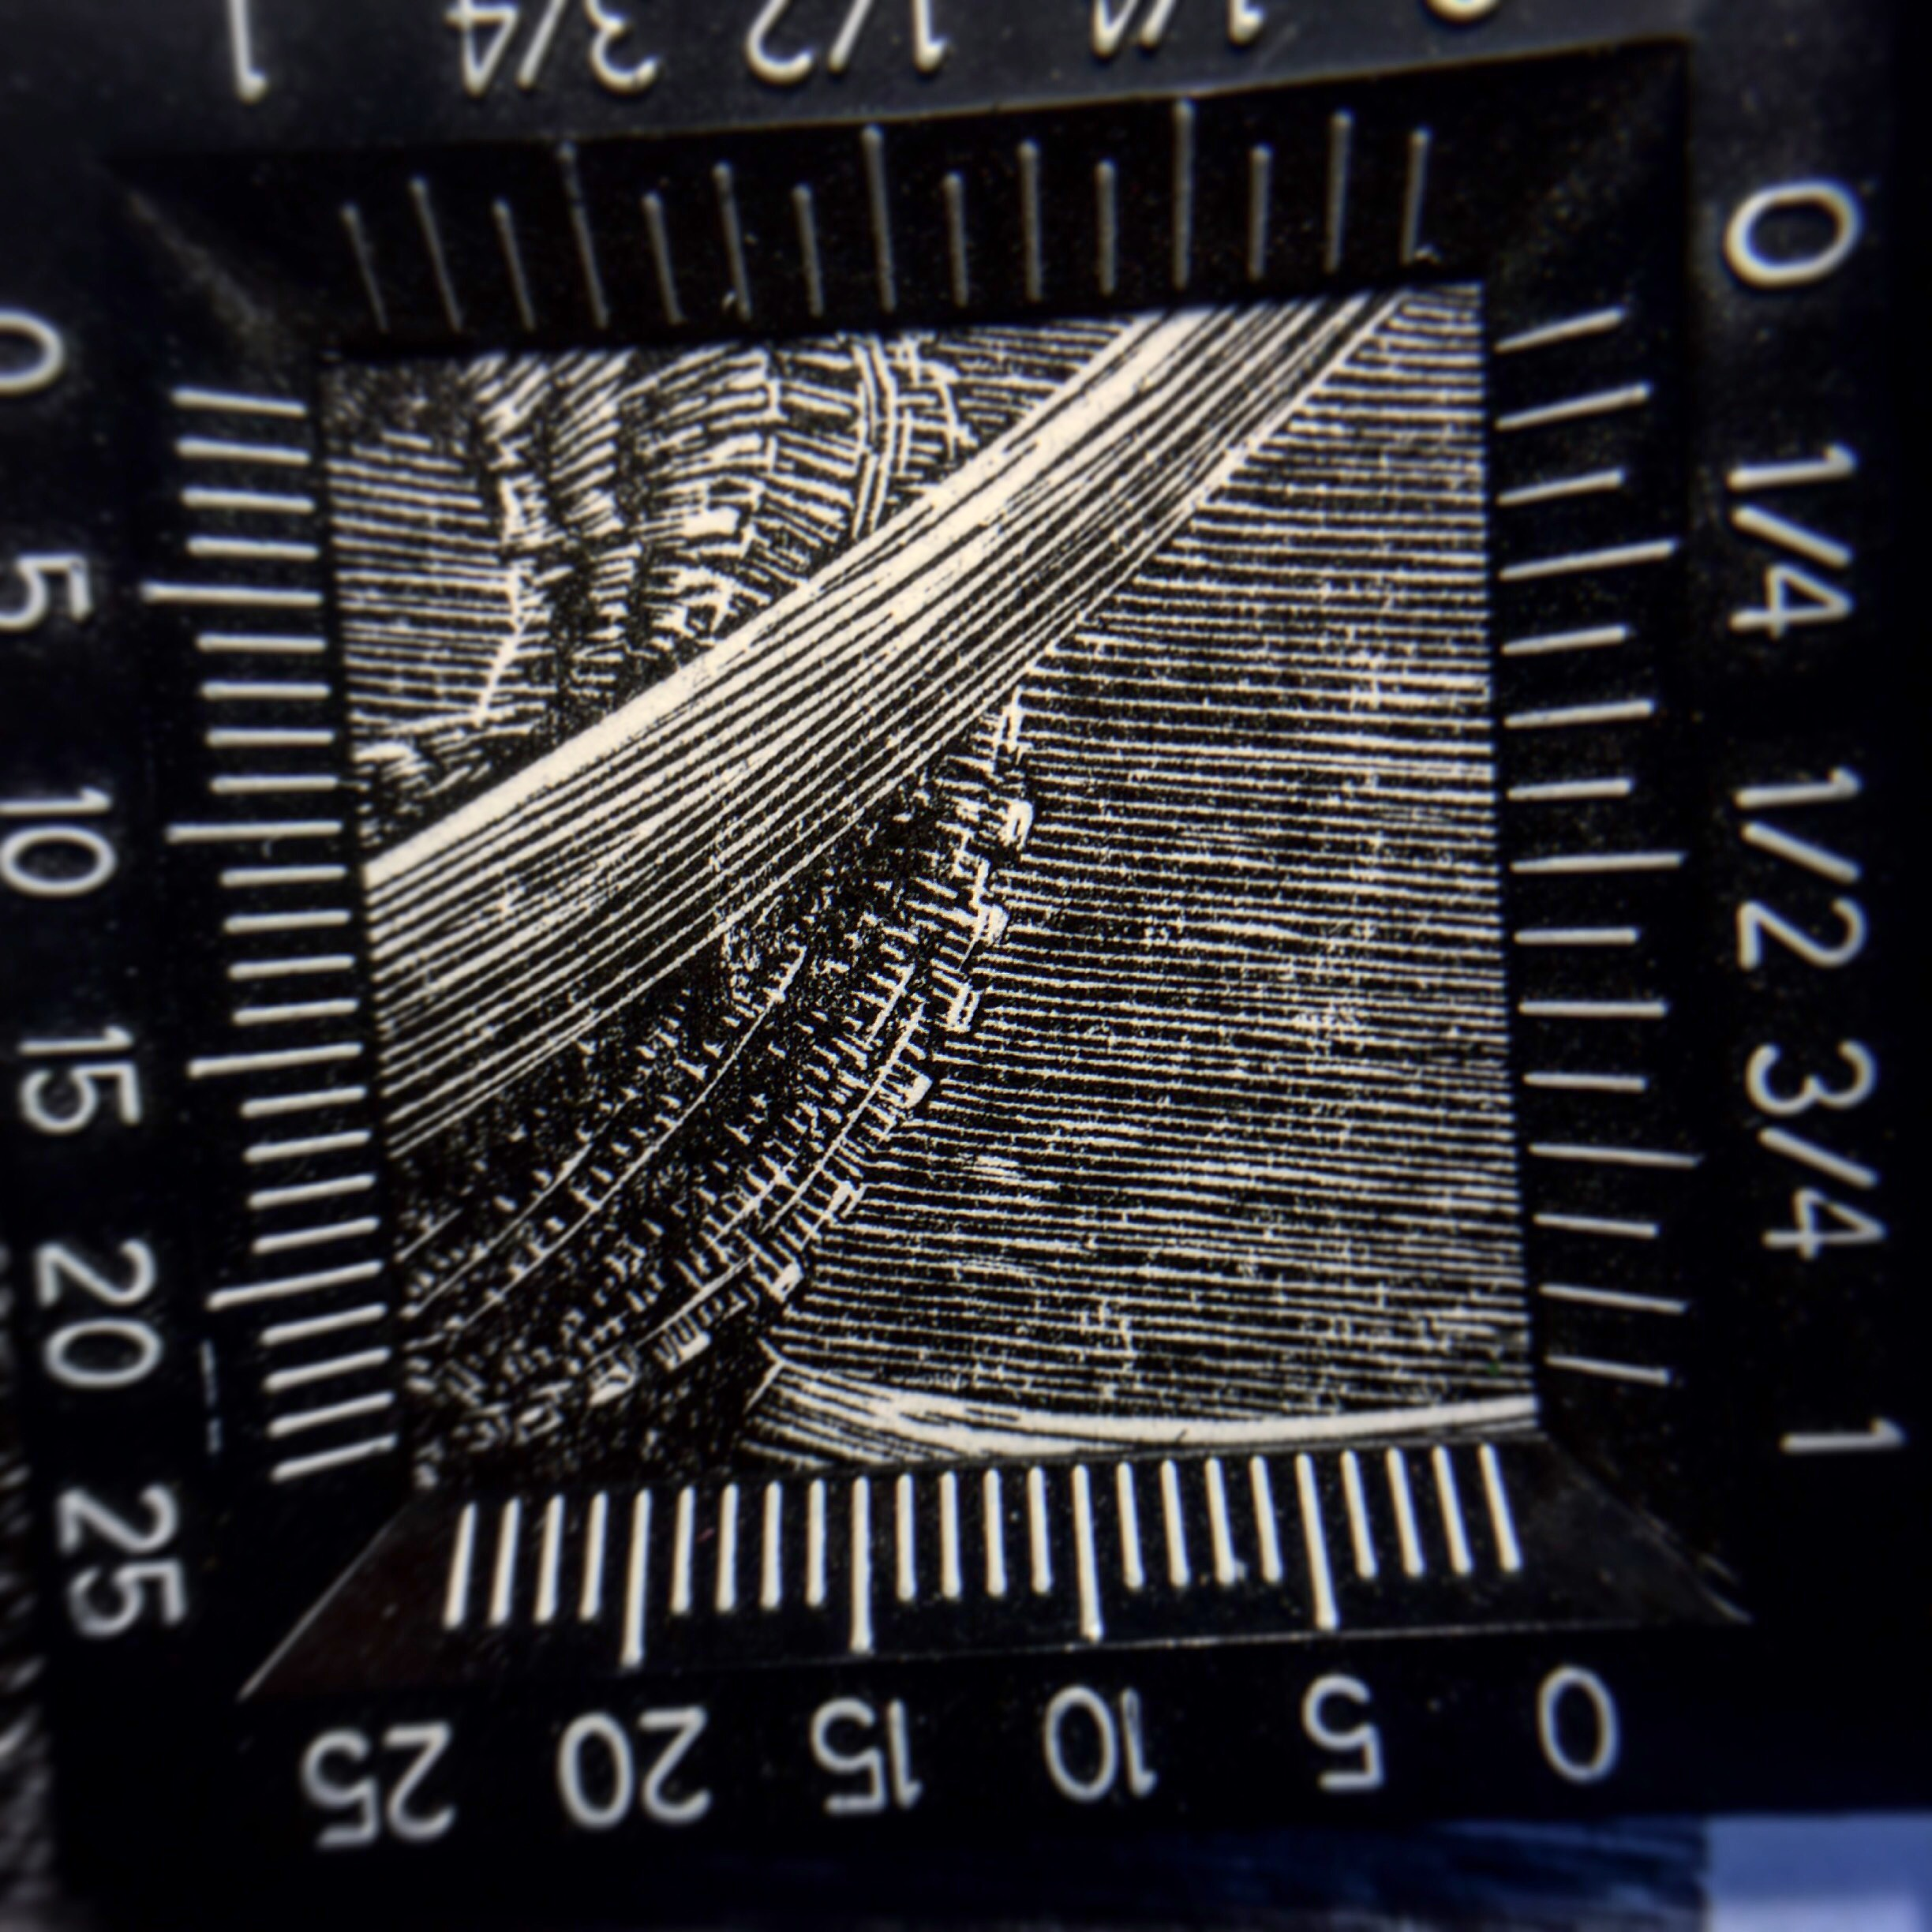 This shows a 1 inch x 1 inch section of the print magnified.